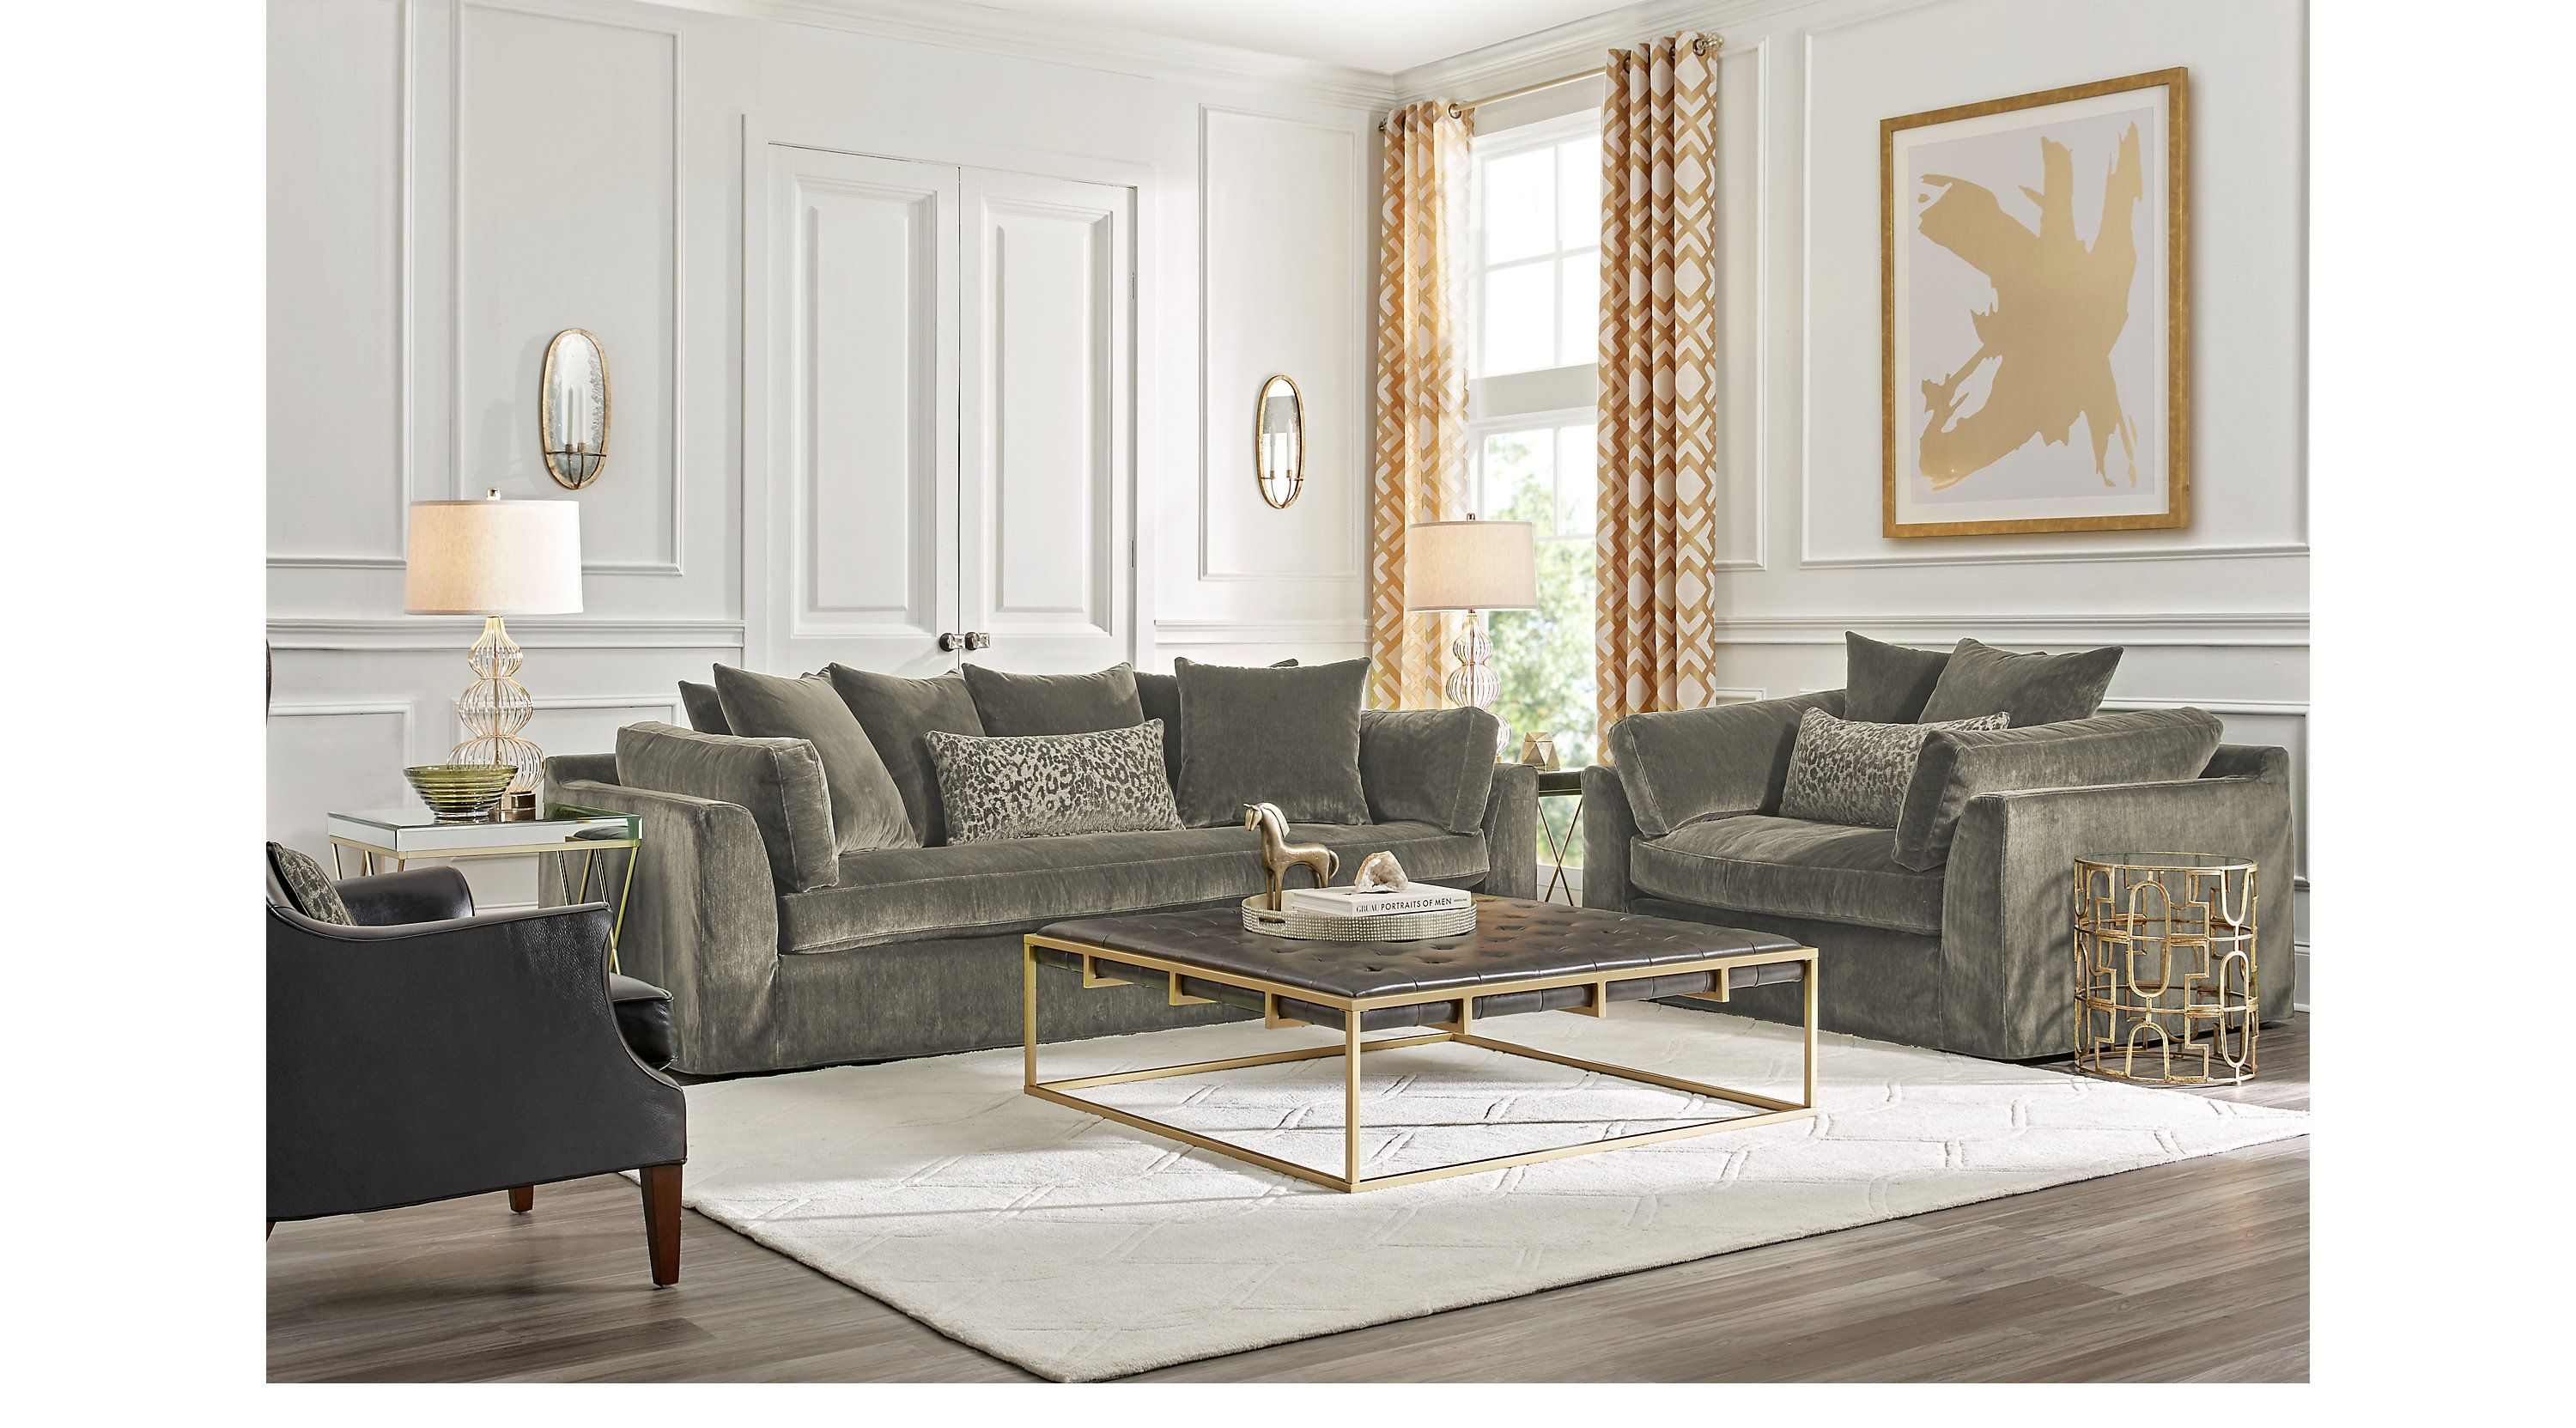 Raven Lane Gray 3 Pc Living Room   Living Room Sets (Gray)